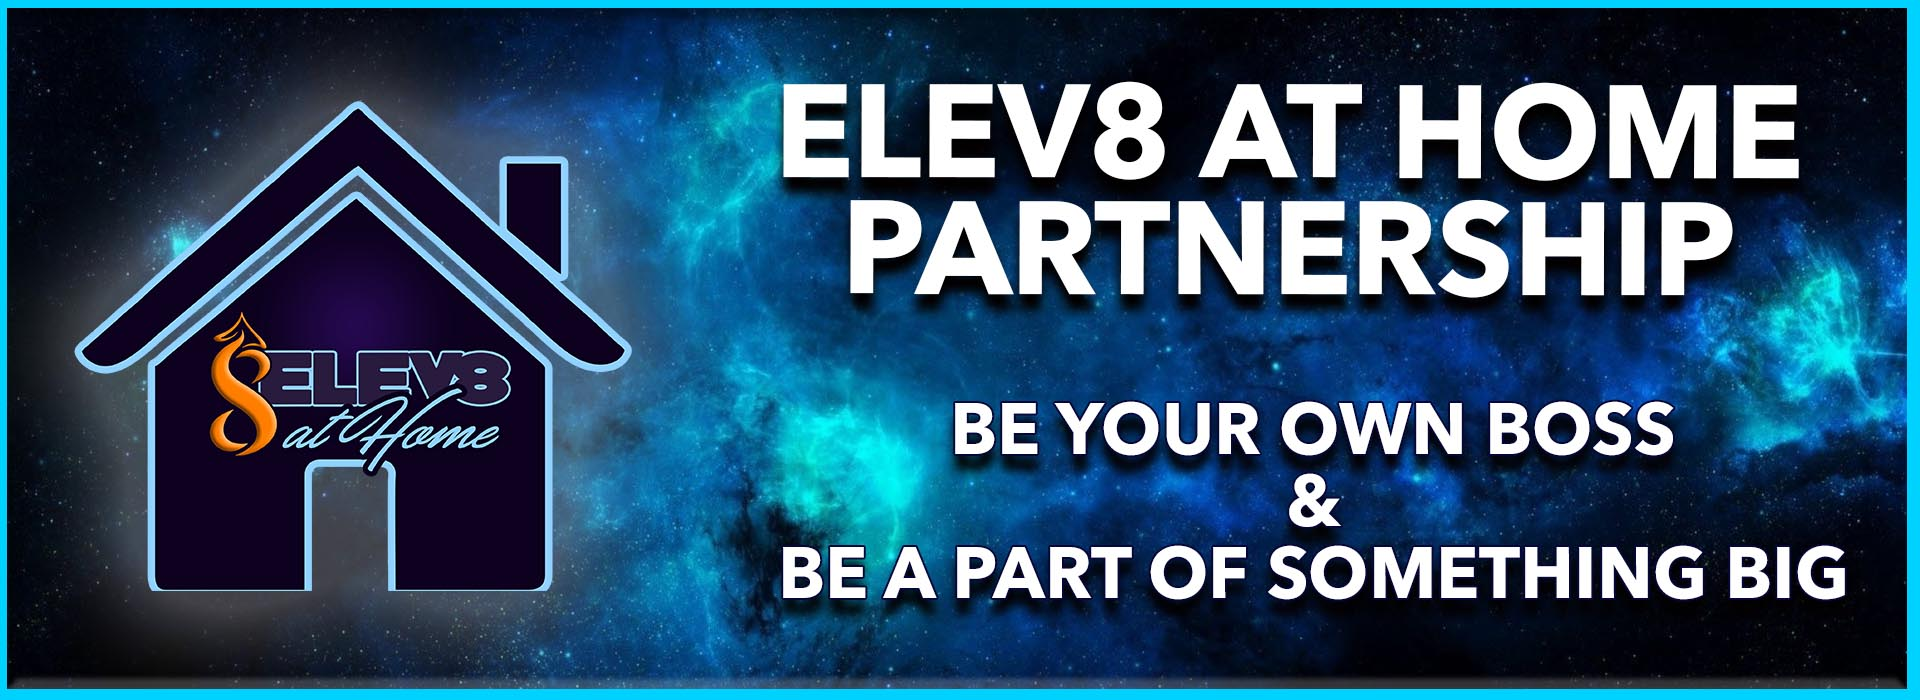 elev8-at-home-partnership-web-banner.jpg